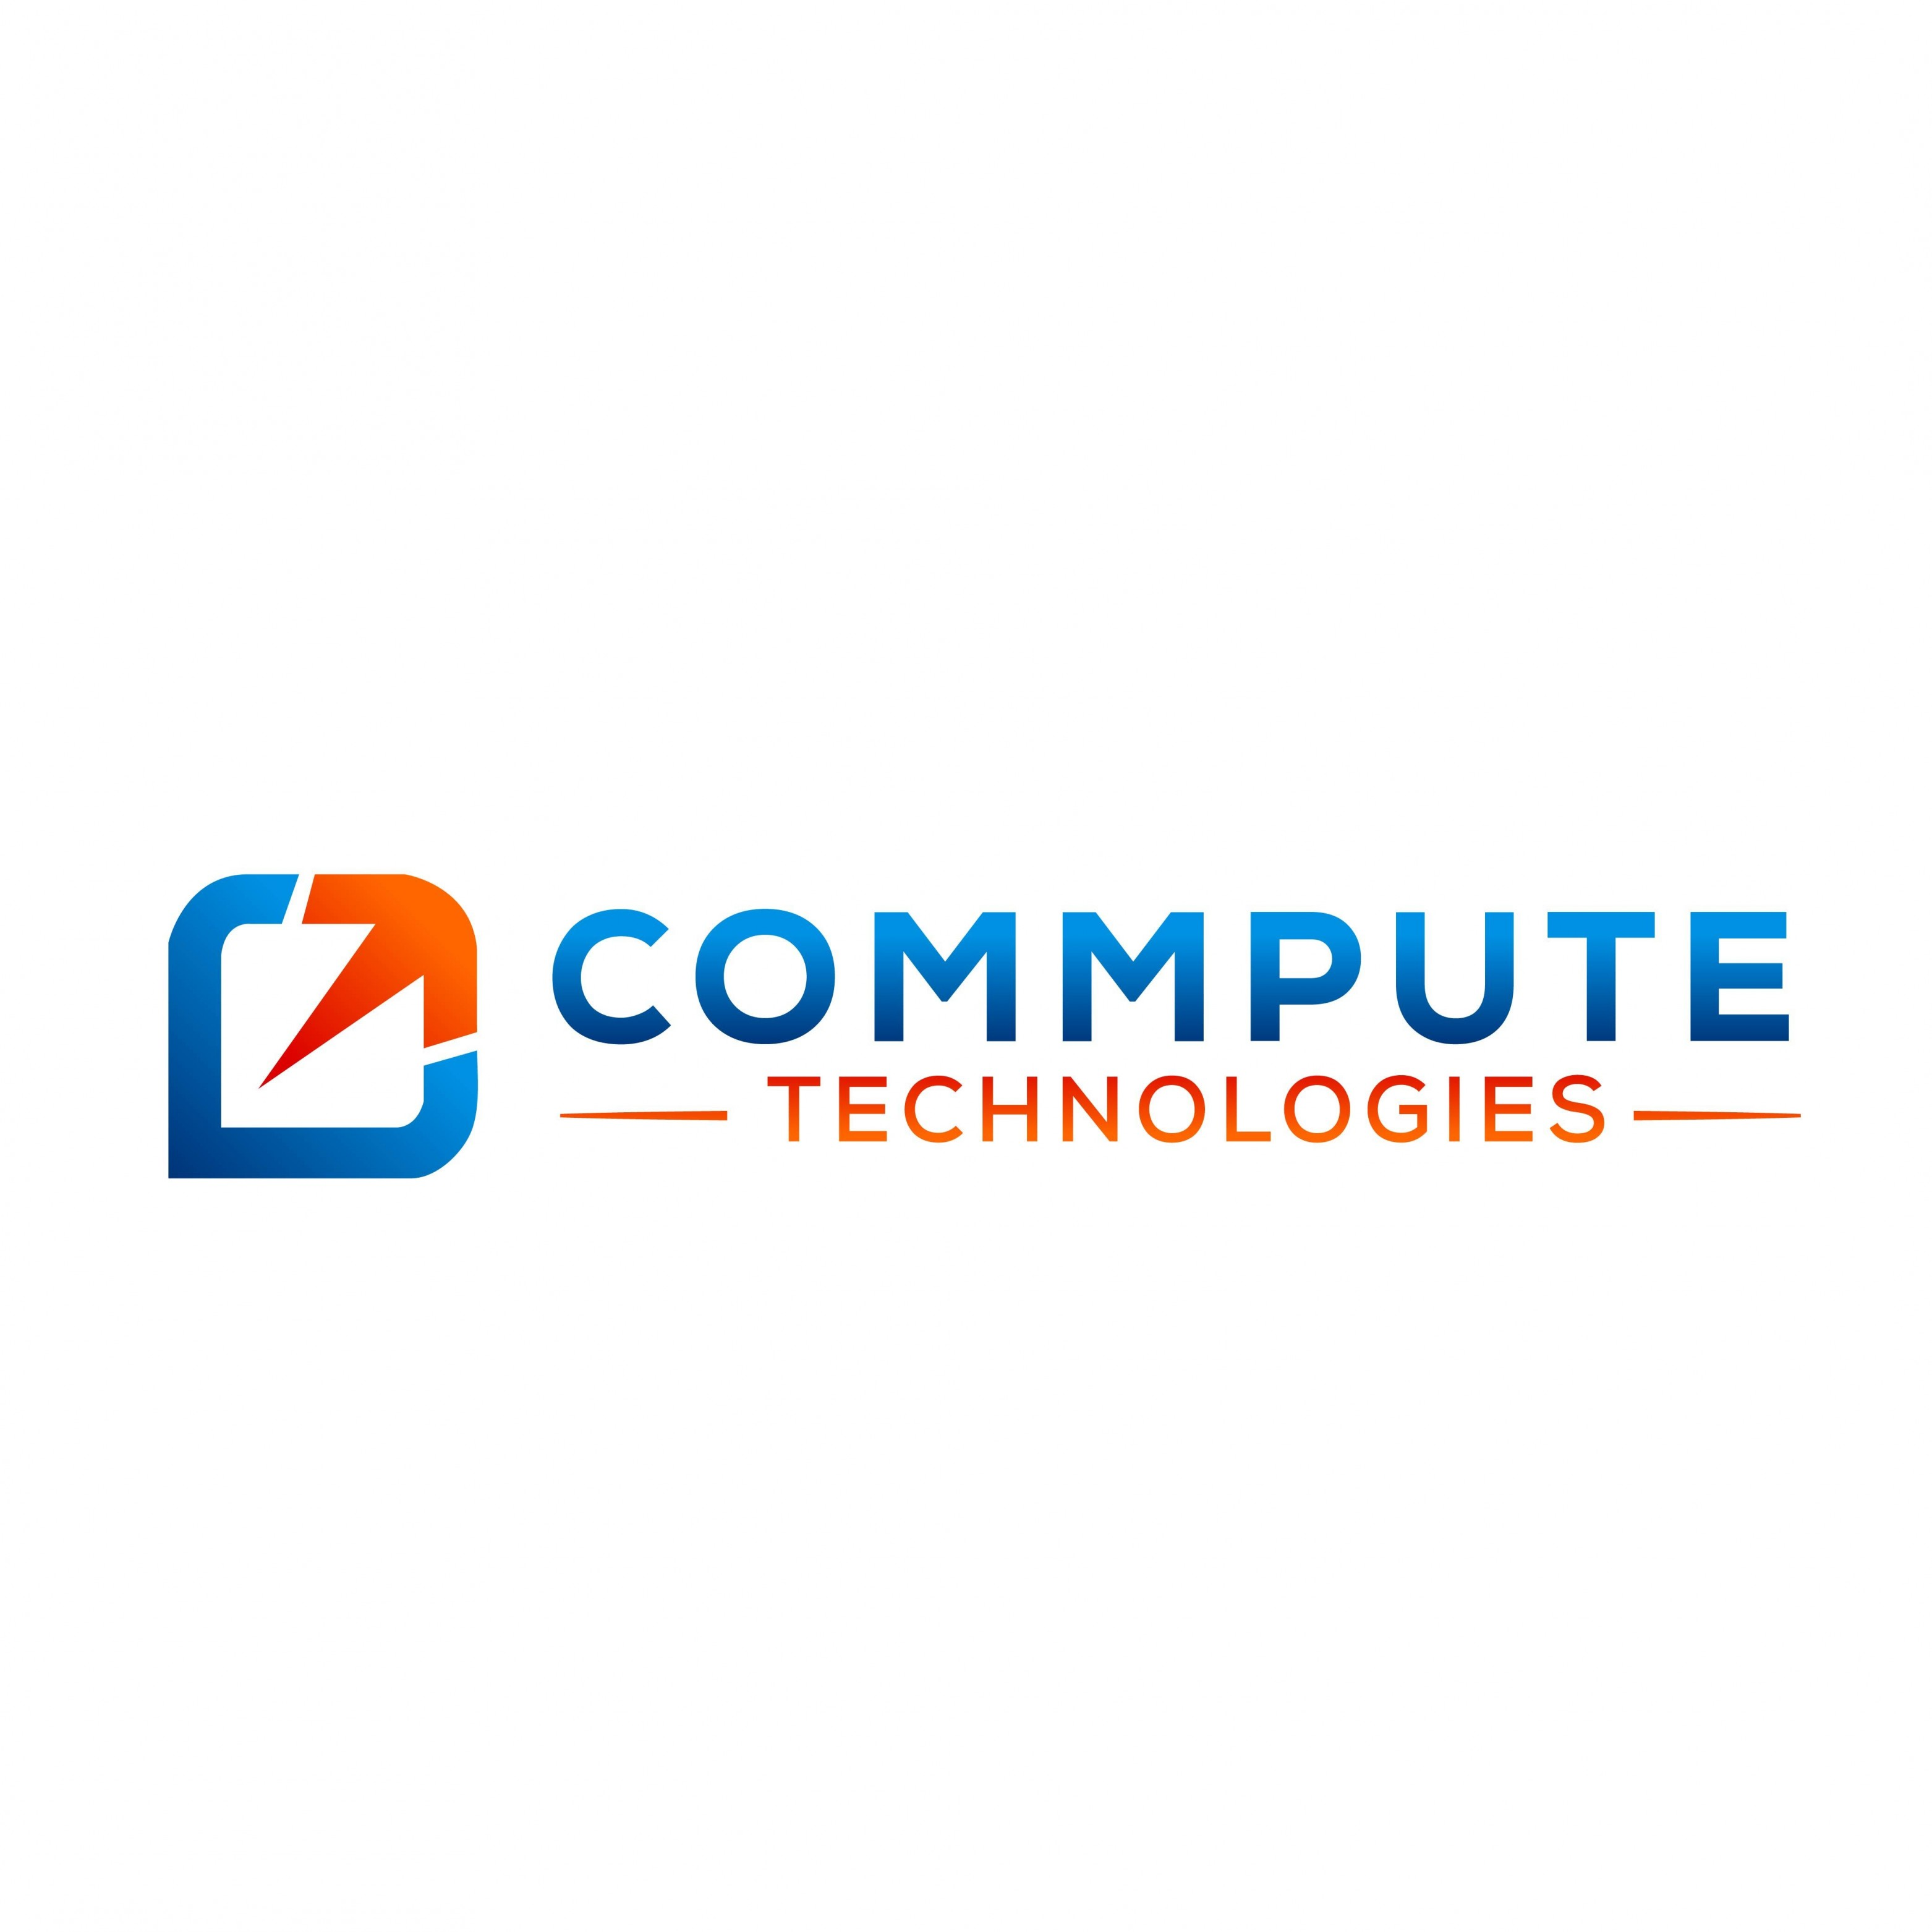 Commpute Technologies Pvt. Ltd. is an award-winning ISO 9001: 2008 Certified Managed IT Services, CRM, HRMS, website and mobile app development company India. With a team of 450+ professionals with un